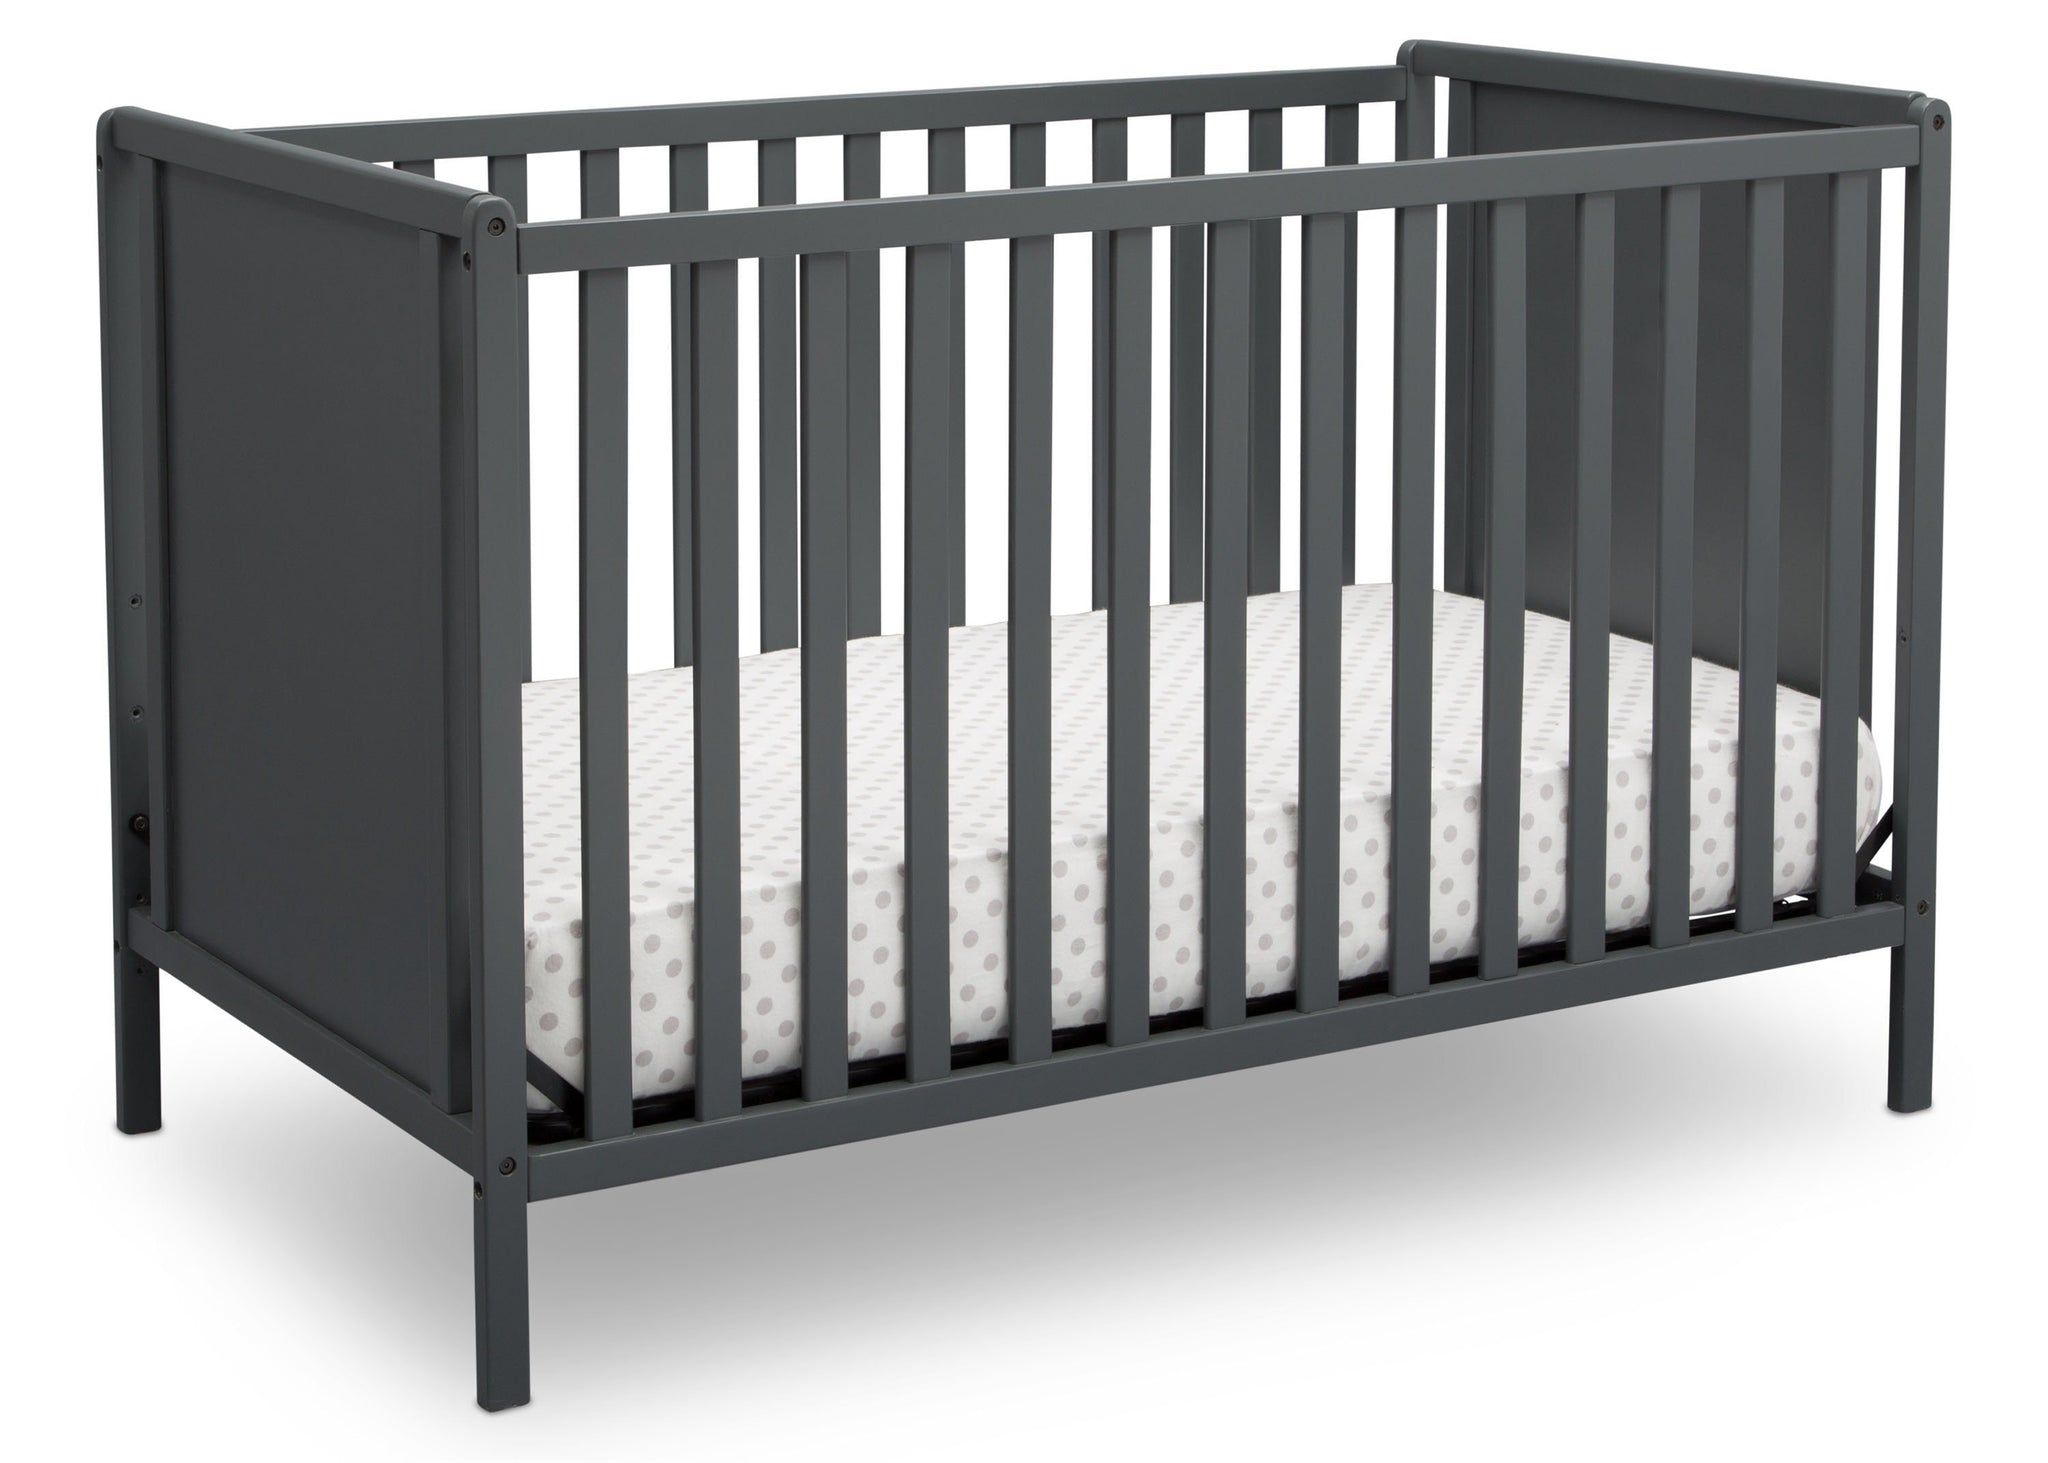 Delta Children Charcoal Grey (029) Heartland Classic 4-in-1 Convertible Crib, Crib Angle, b3b